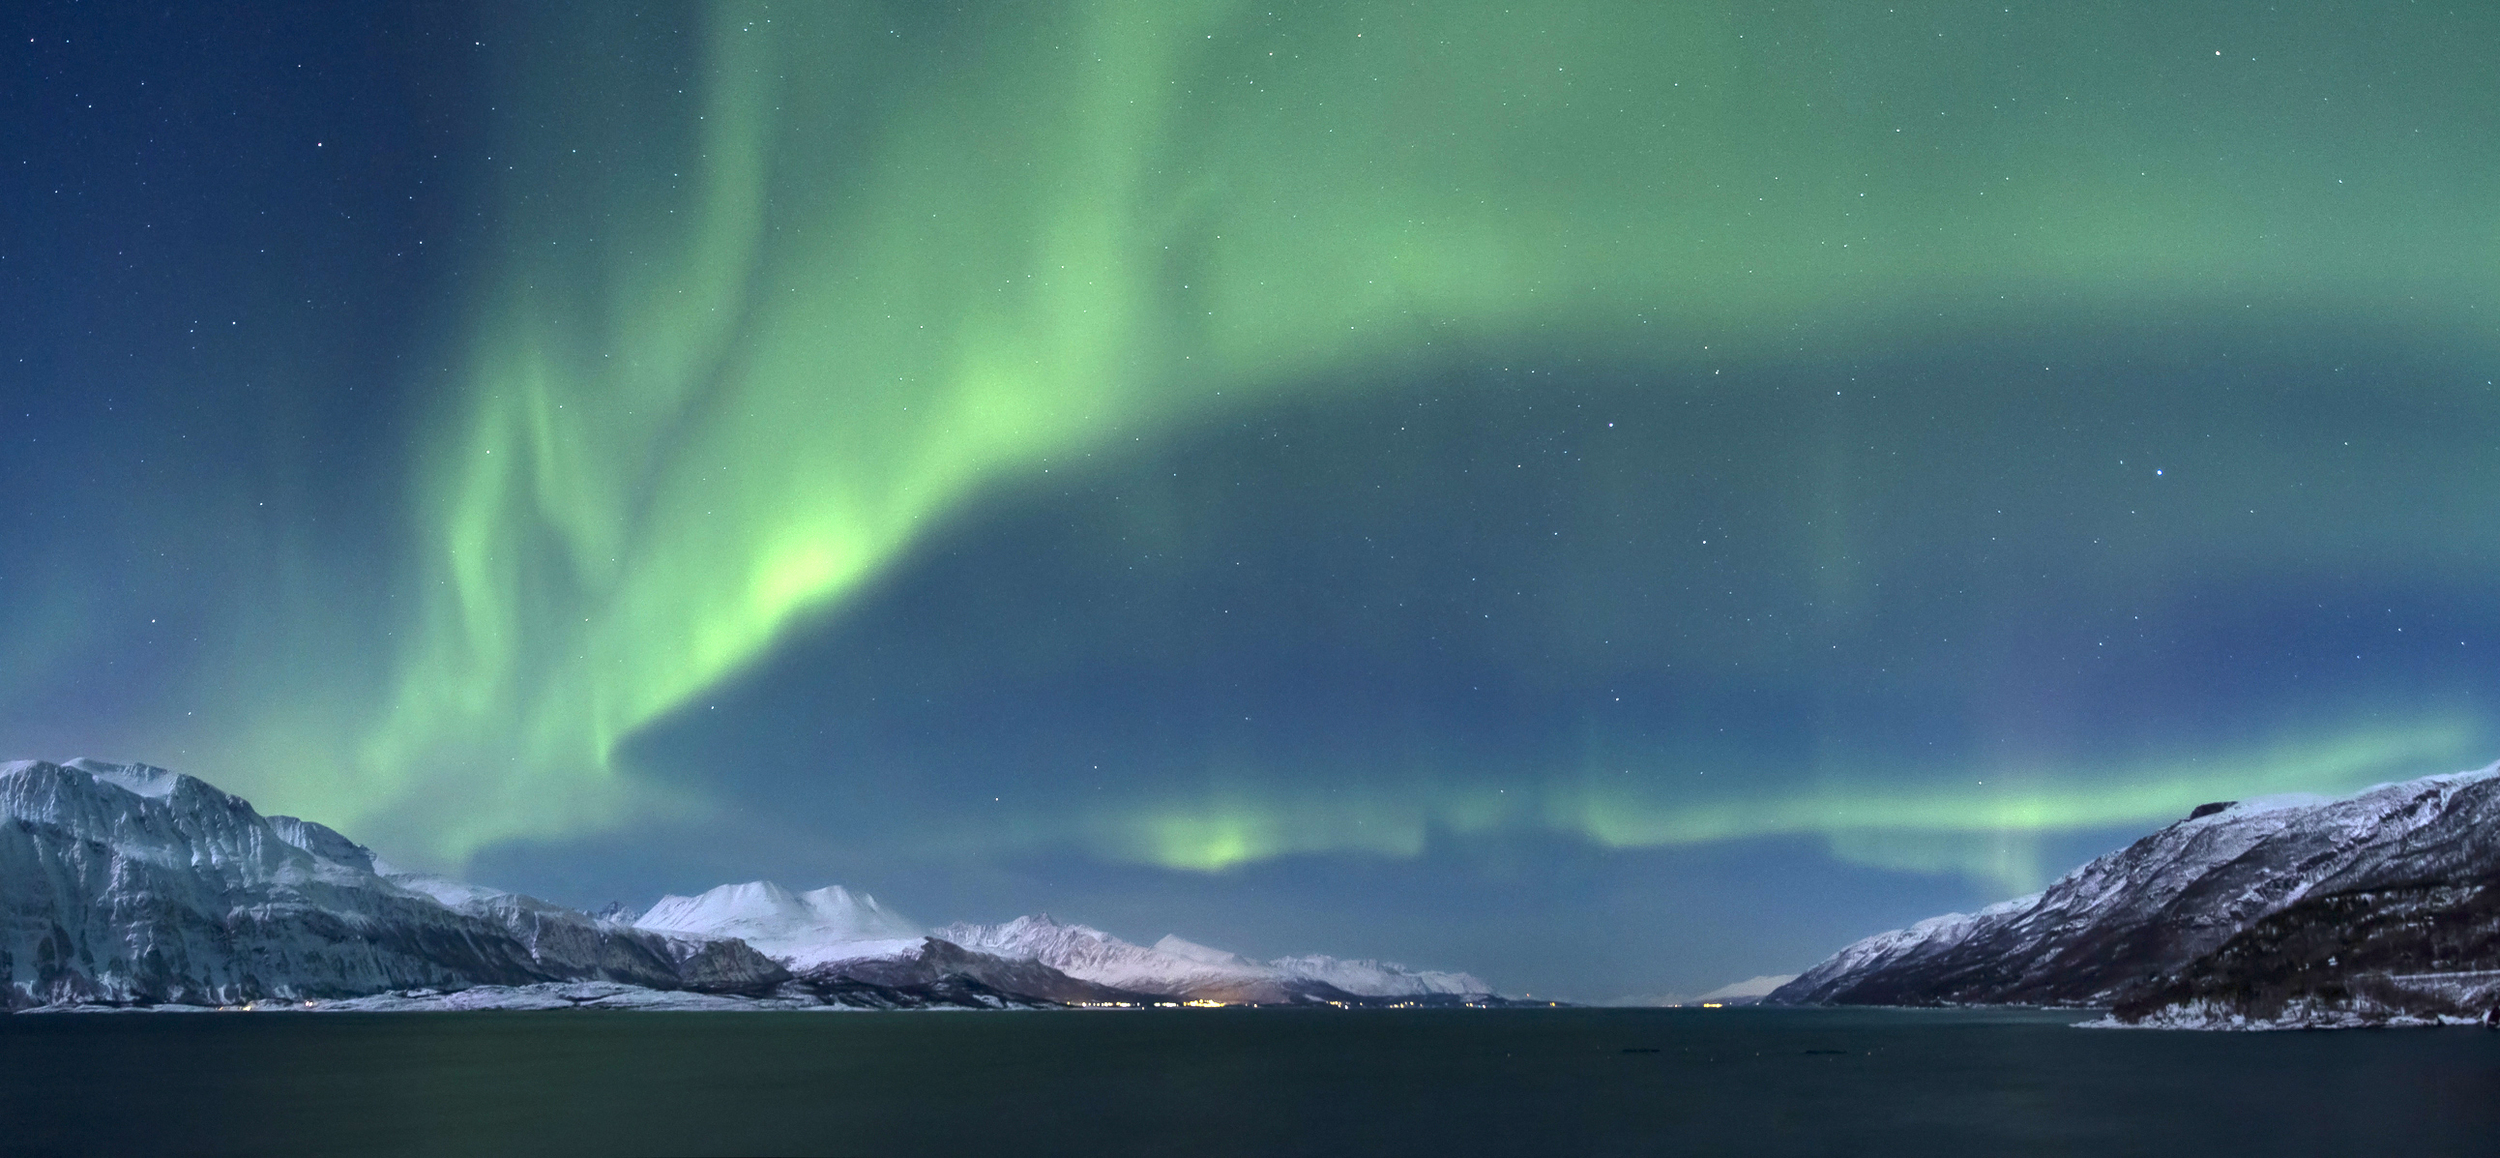 Aurora_borealis_above_Lyngenfjorden,_2012_March-3